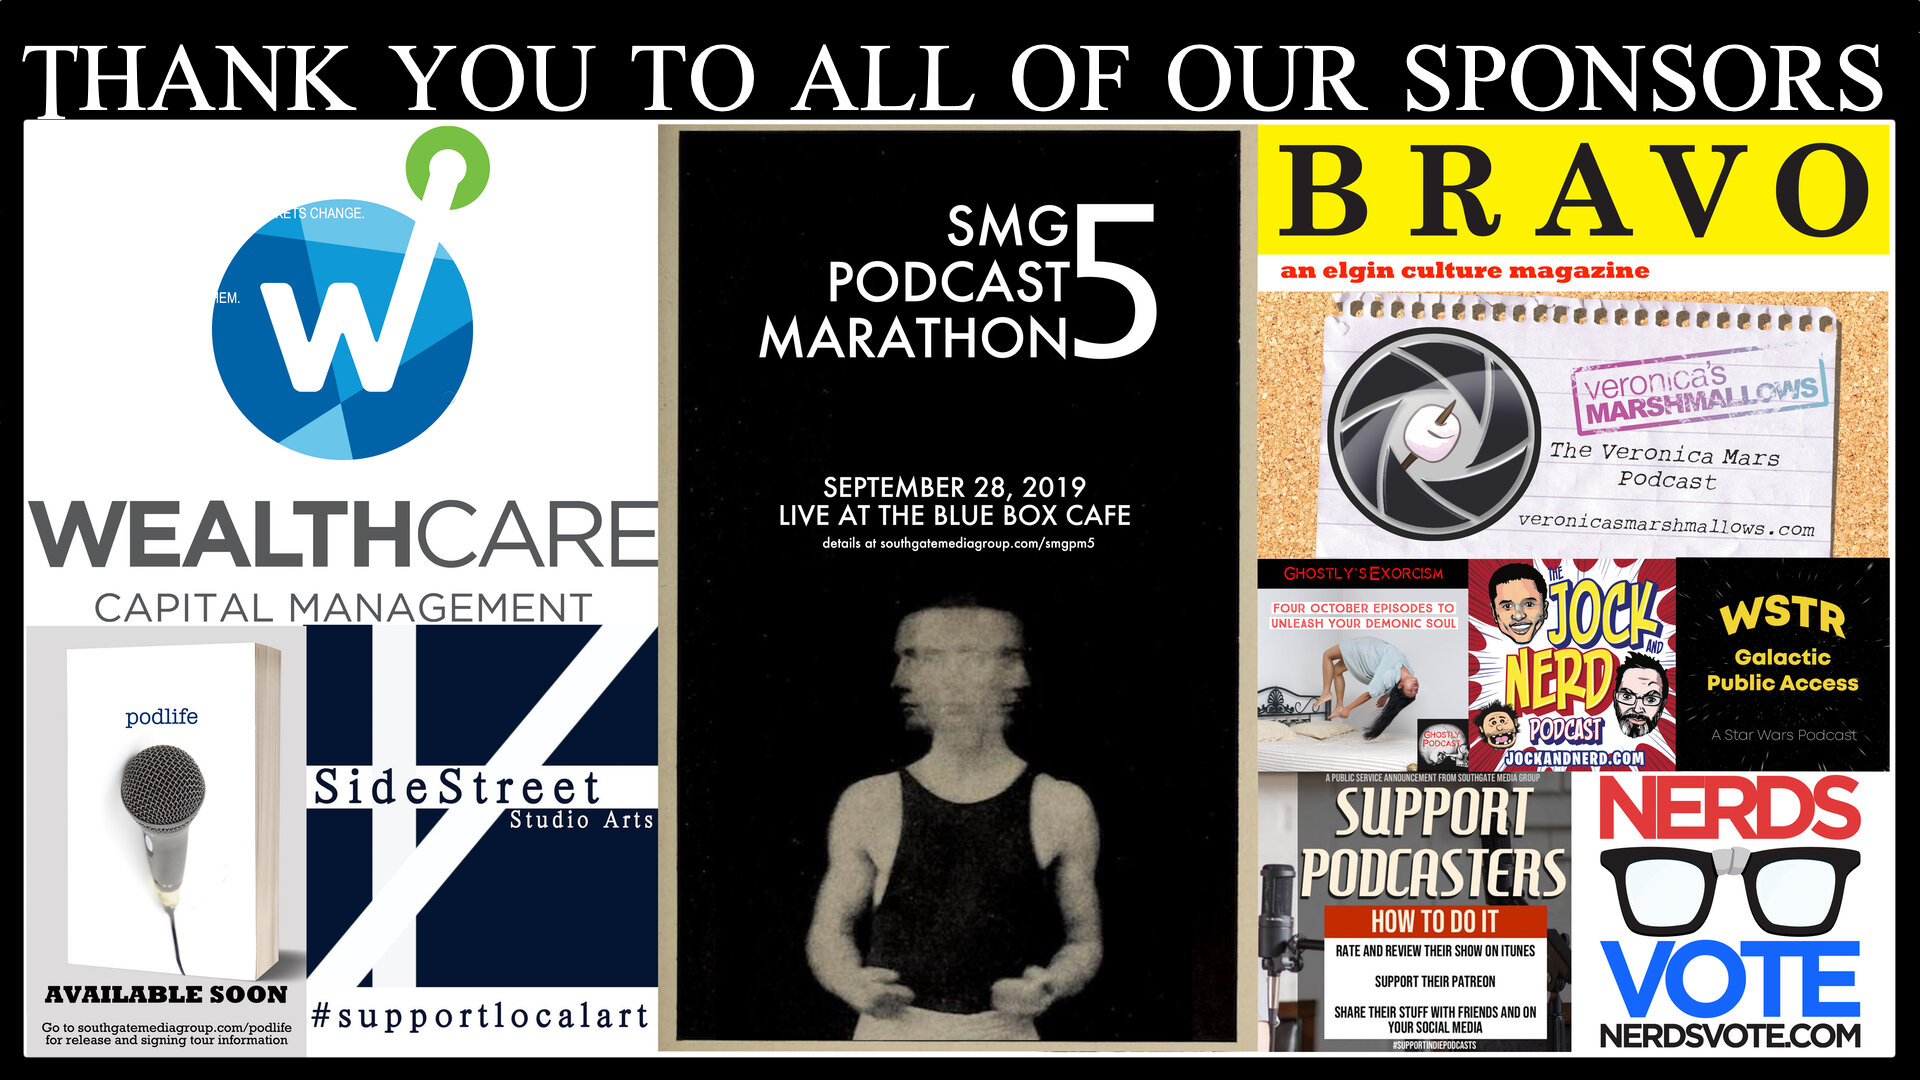 Thanks to our Sponsors FB SMGPM5.jpg